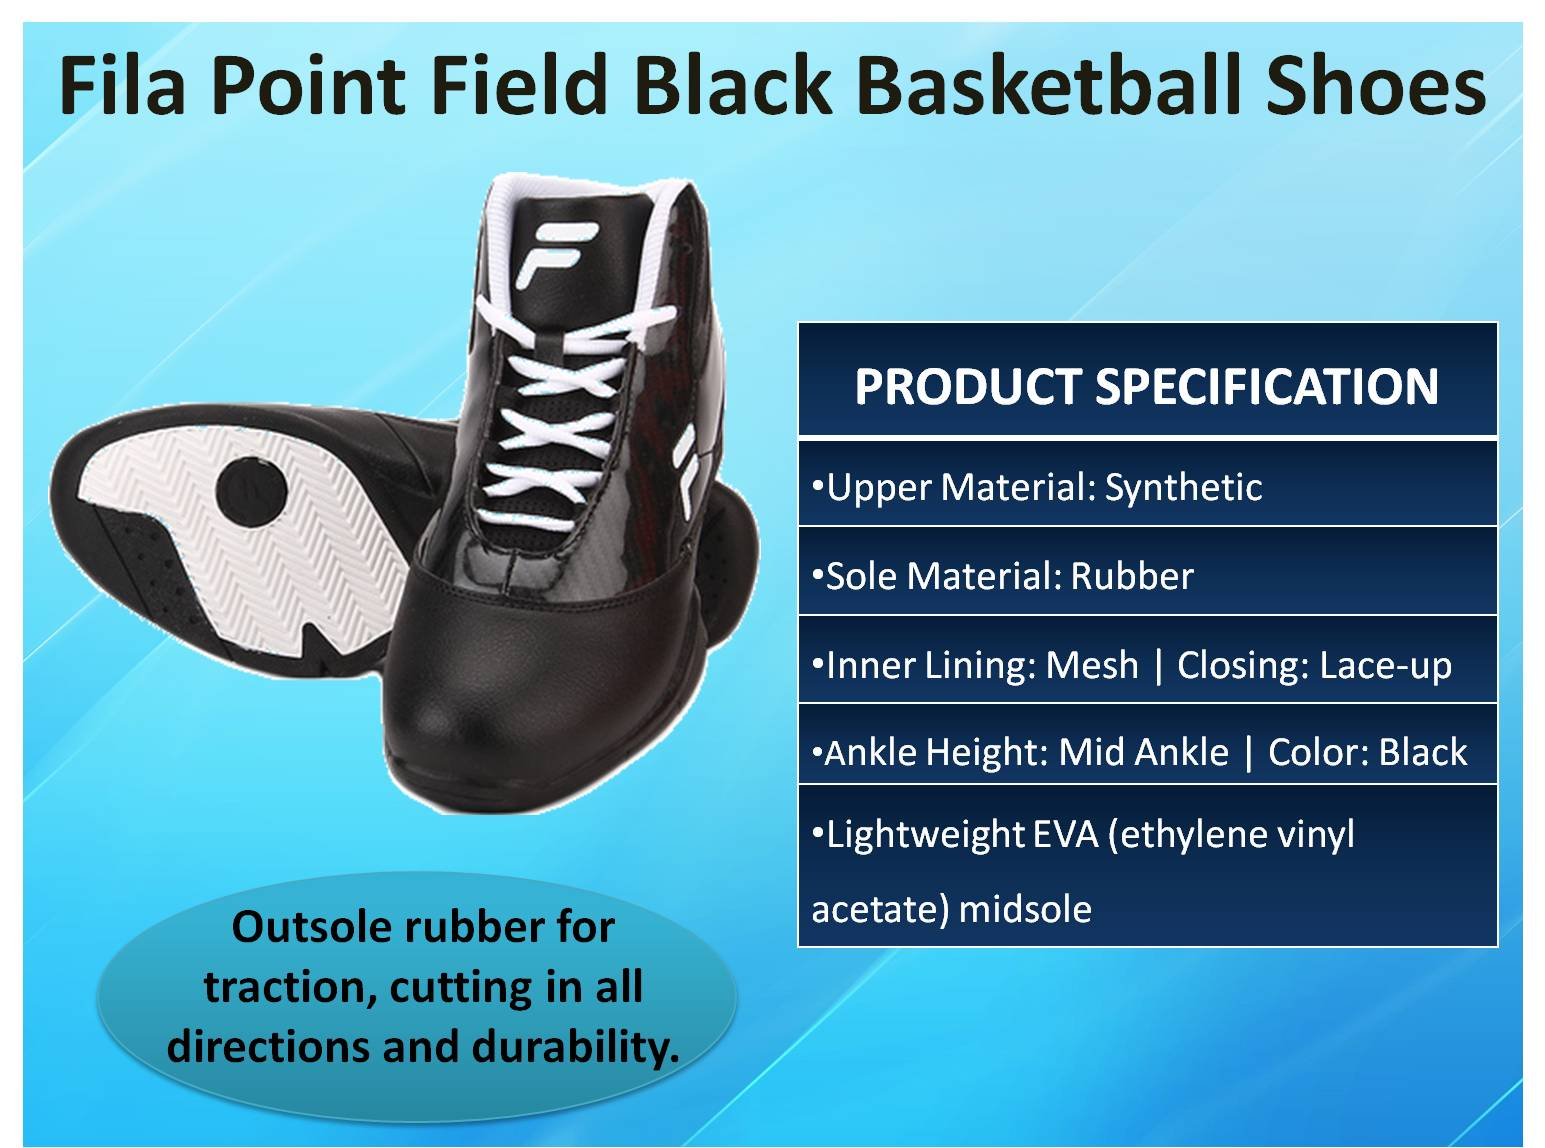 Fila Point Field Black Basketball Shoes